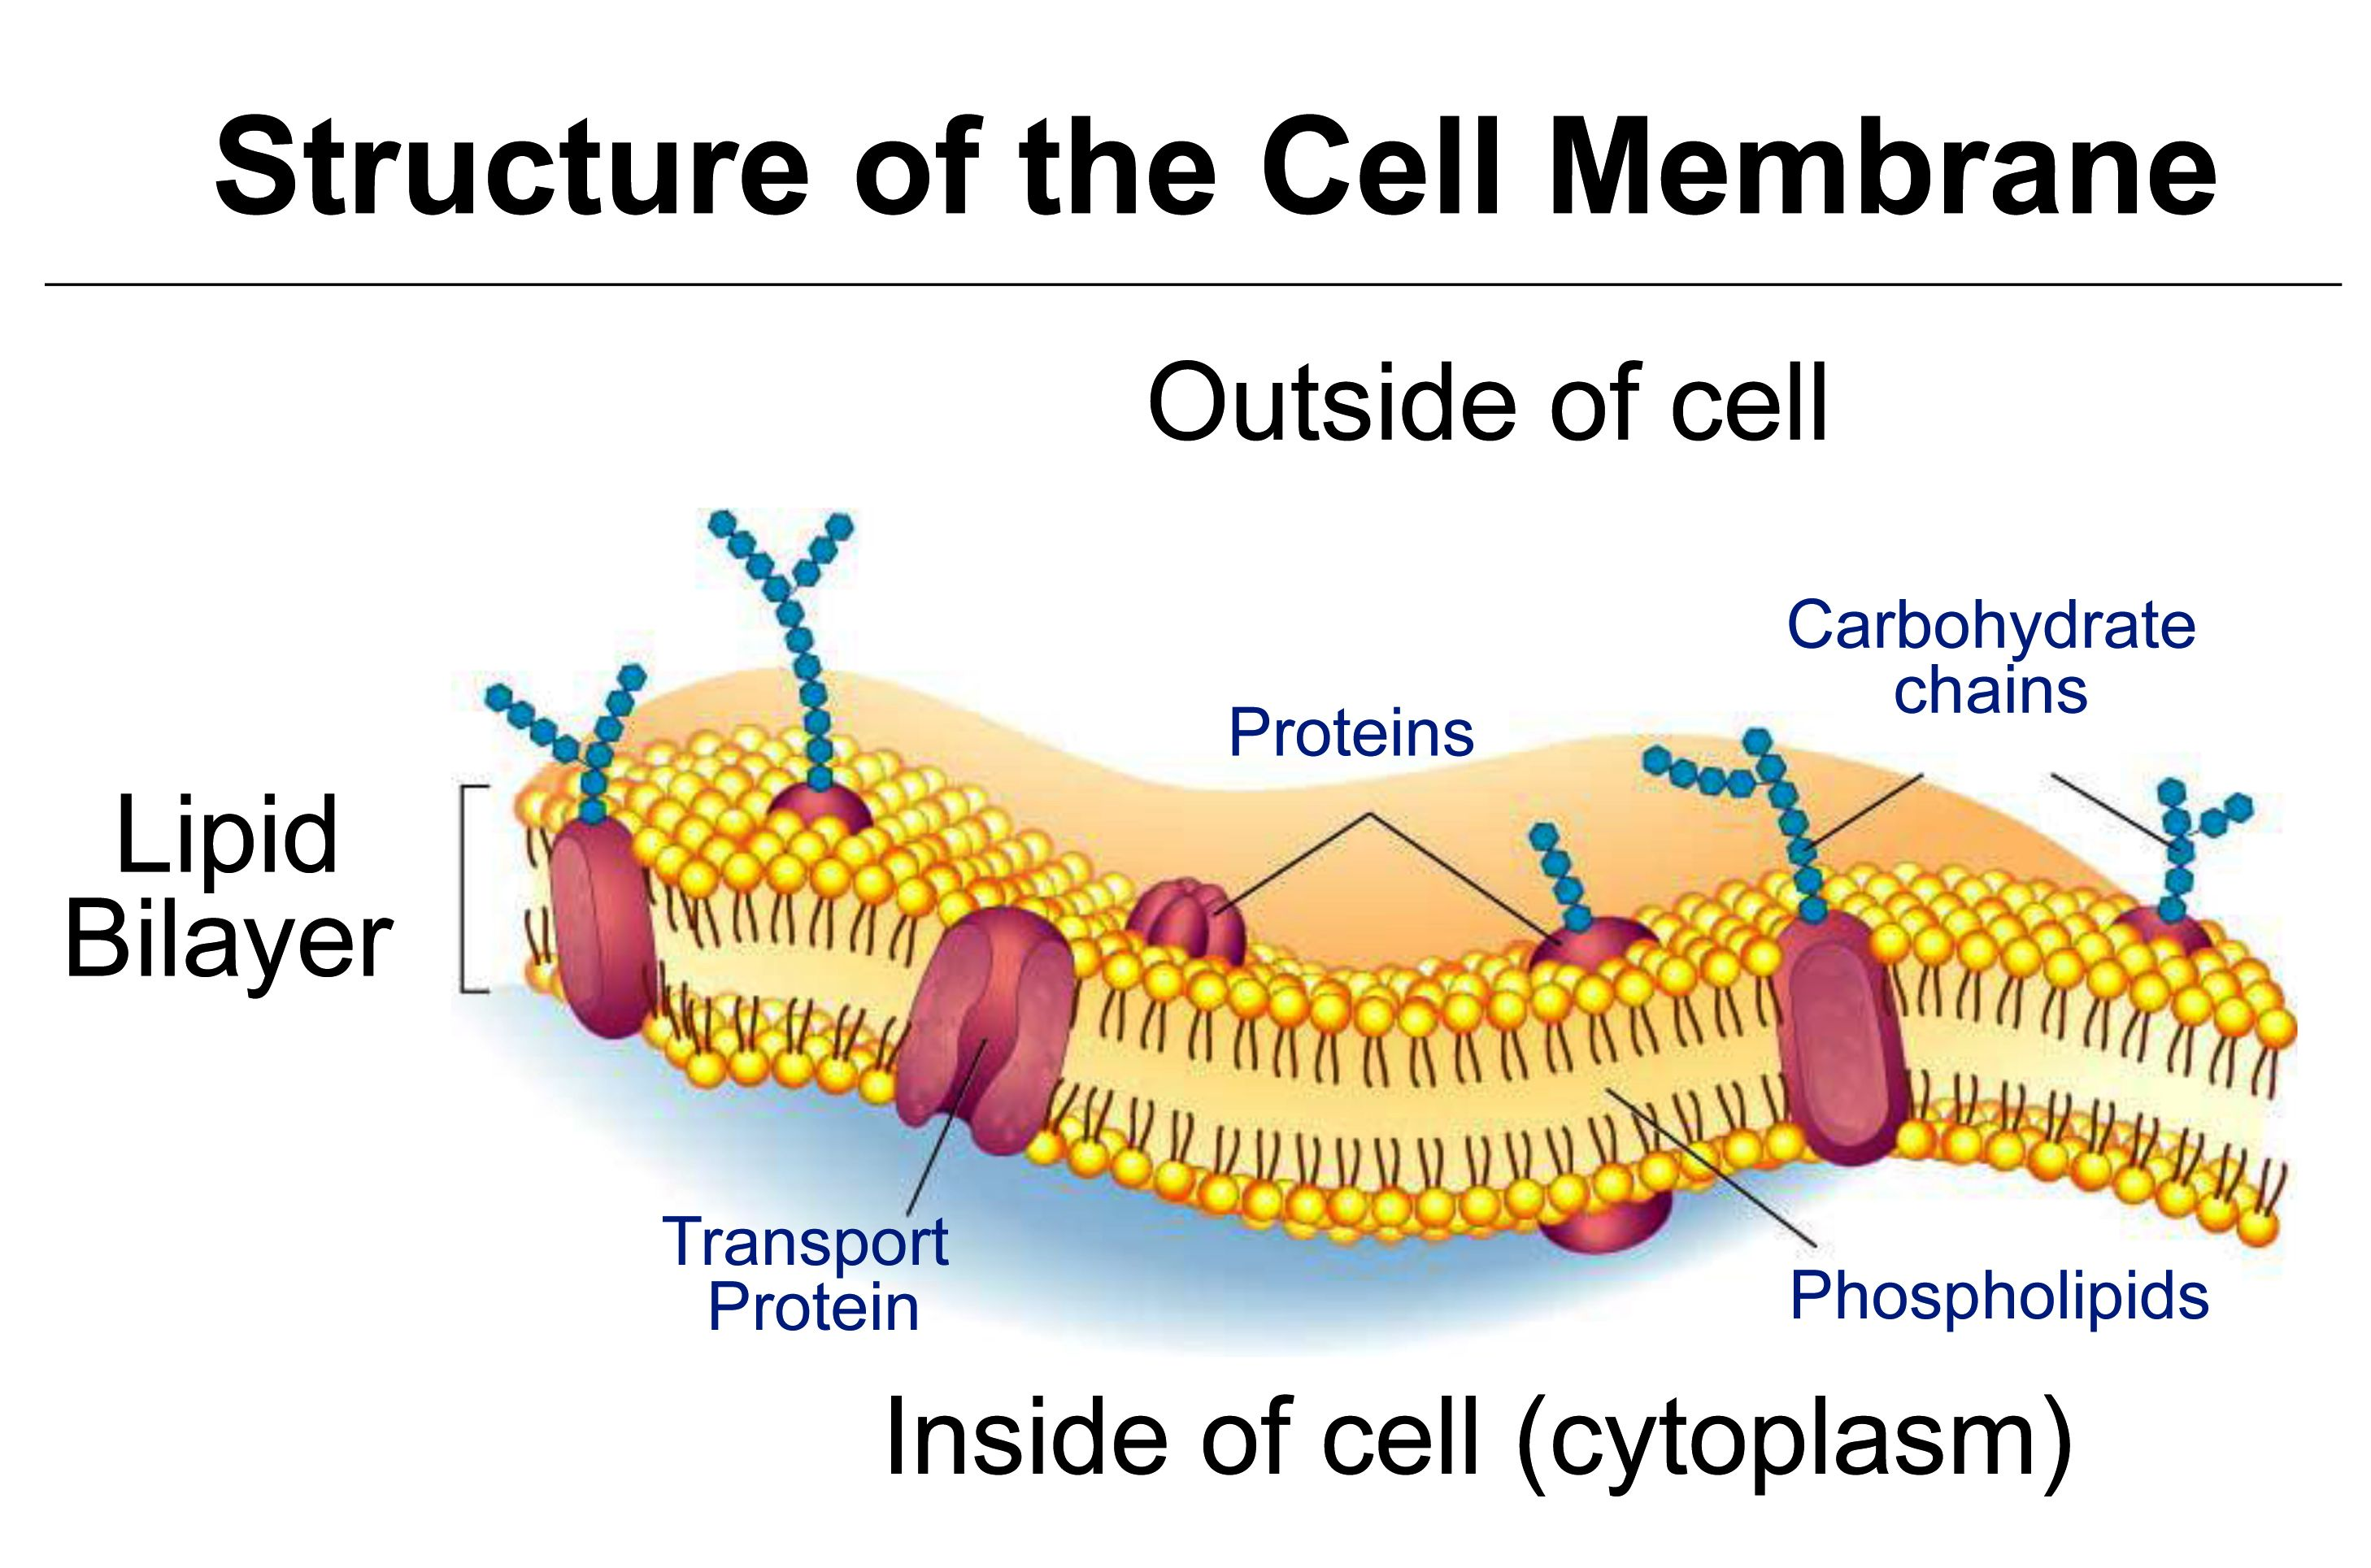 TJ. Schematic diagram of typical membrane proteins in a